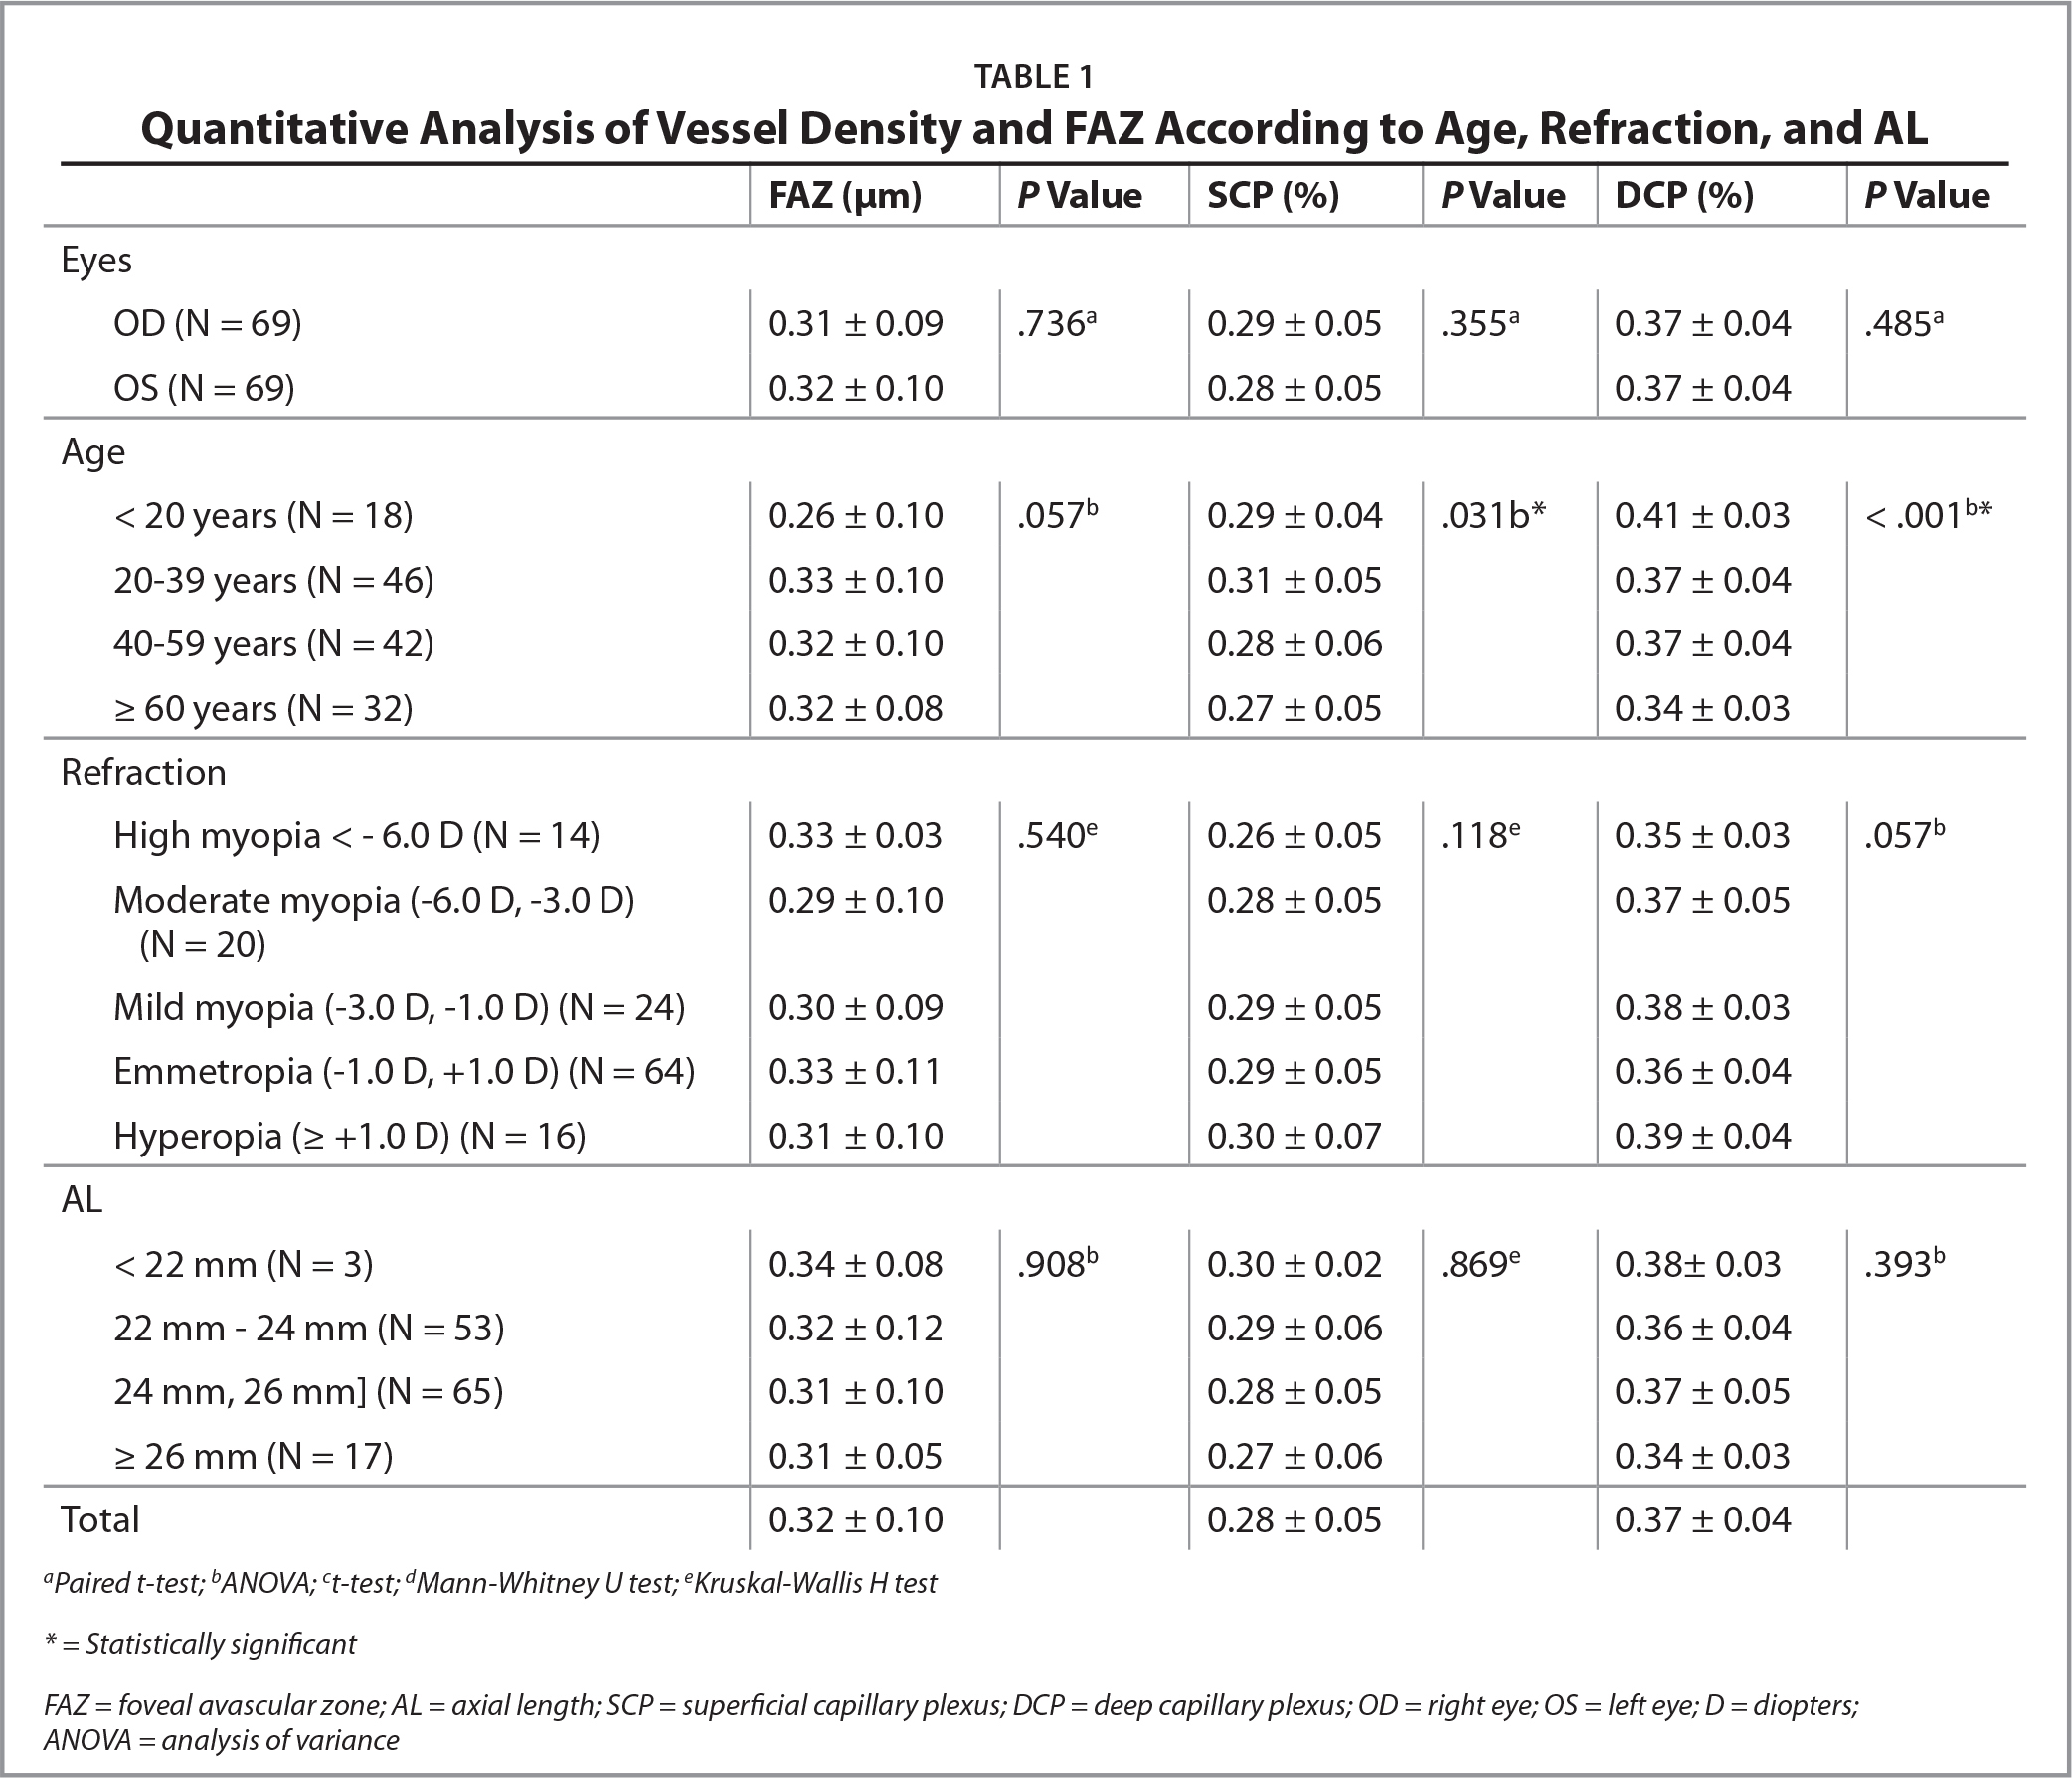 Quantitative Analysis of Vessel Density and FAZ According to Age, Refraction, and AL